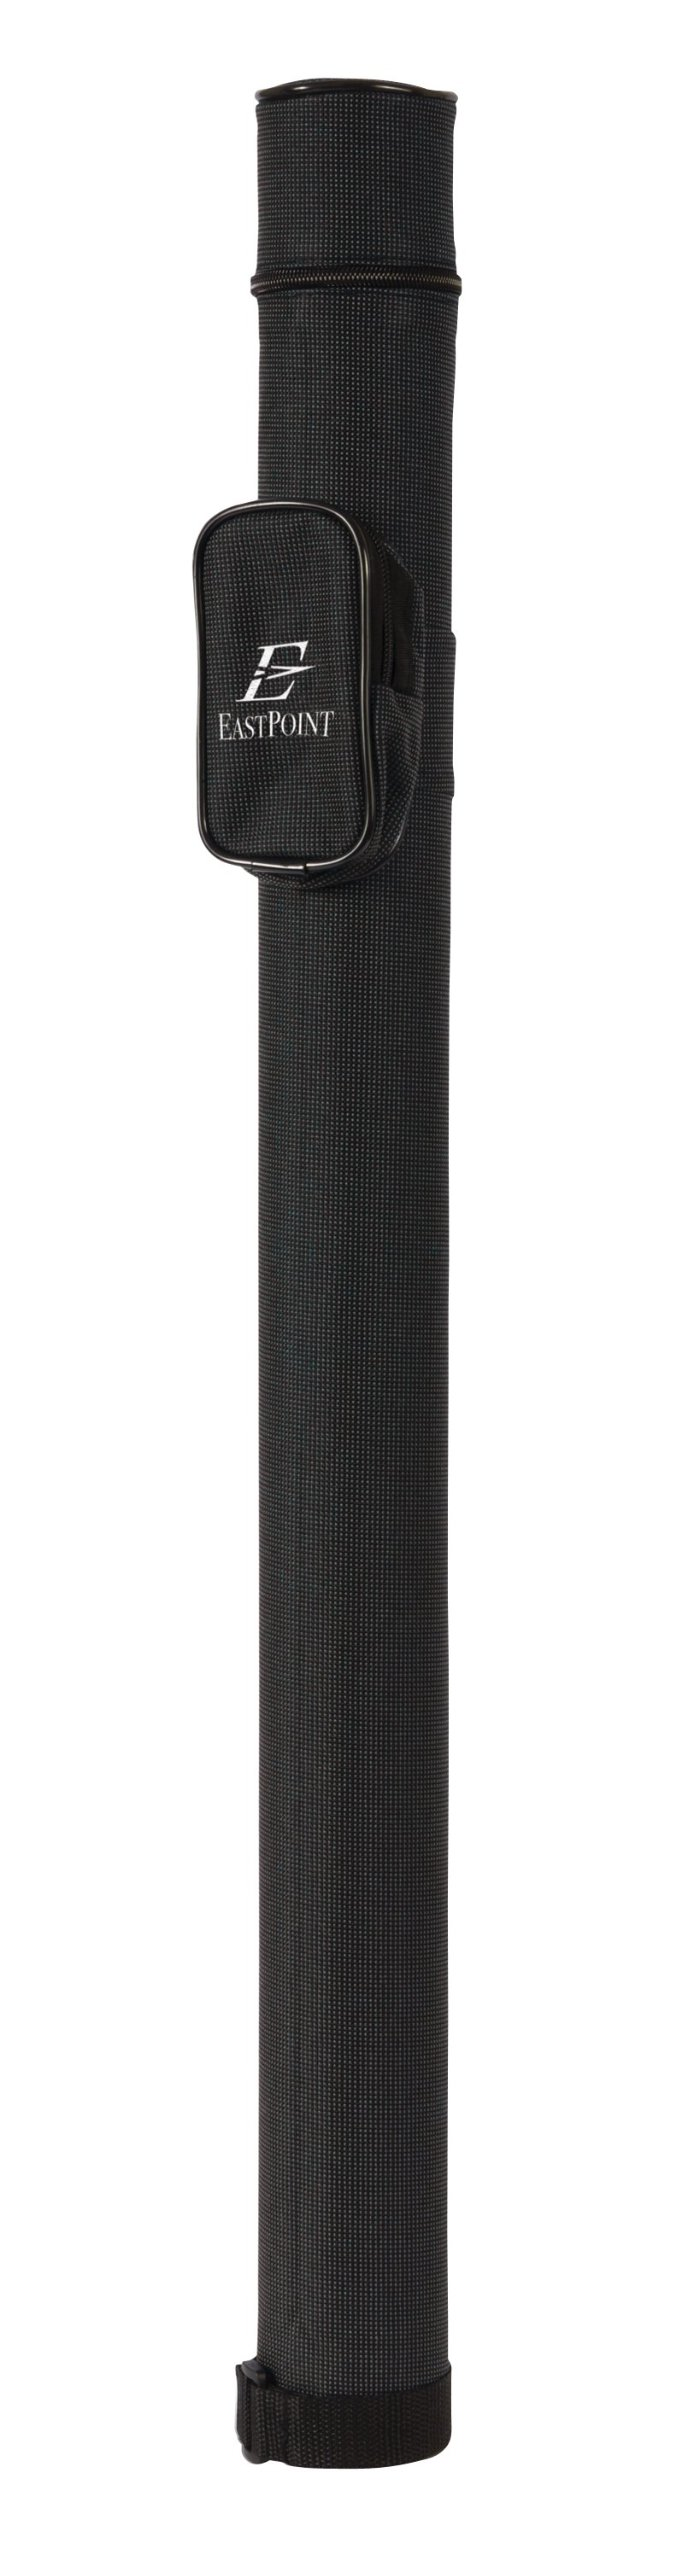 EastPoint Sports Deluxe Tube Billiard Cue Case